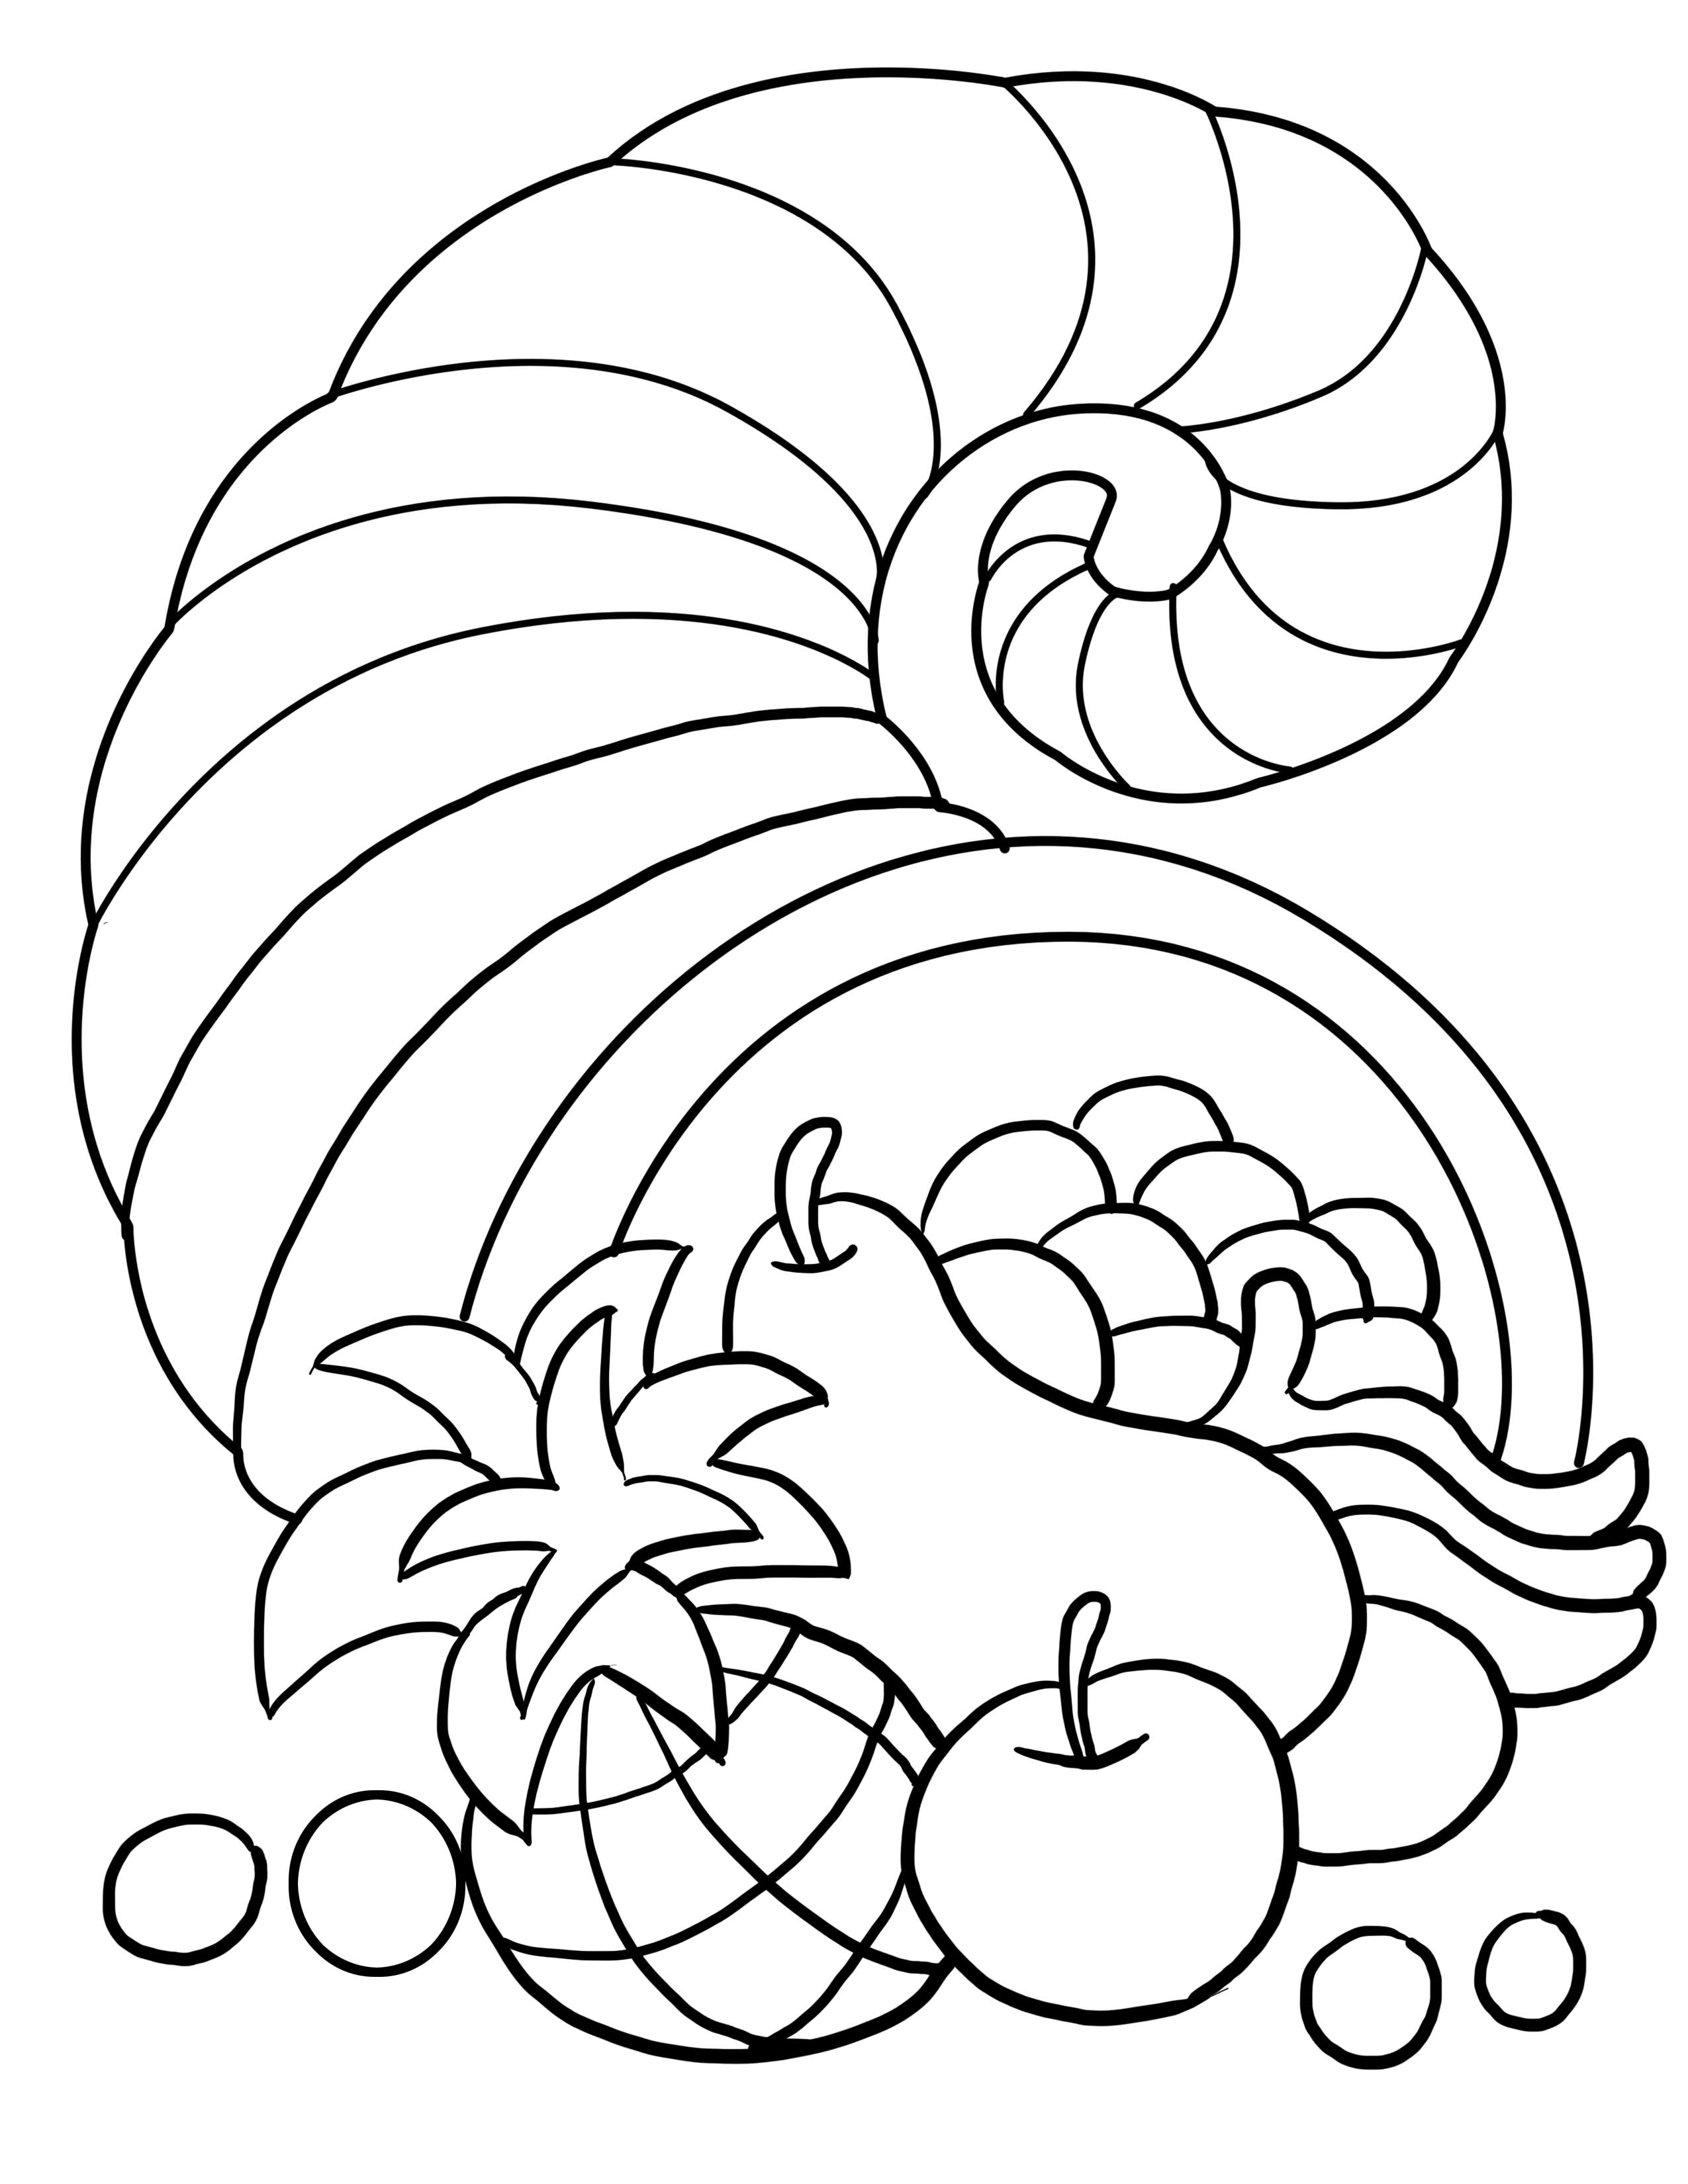 Printable Thanksgiving Coloring Pages Coloring Me Pilgrim Coloring Pages Printable